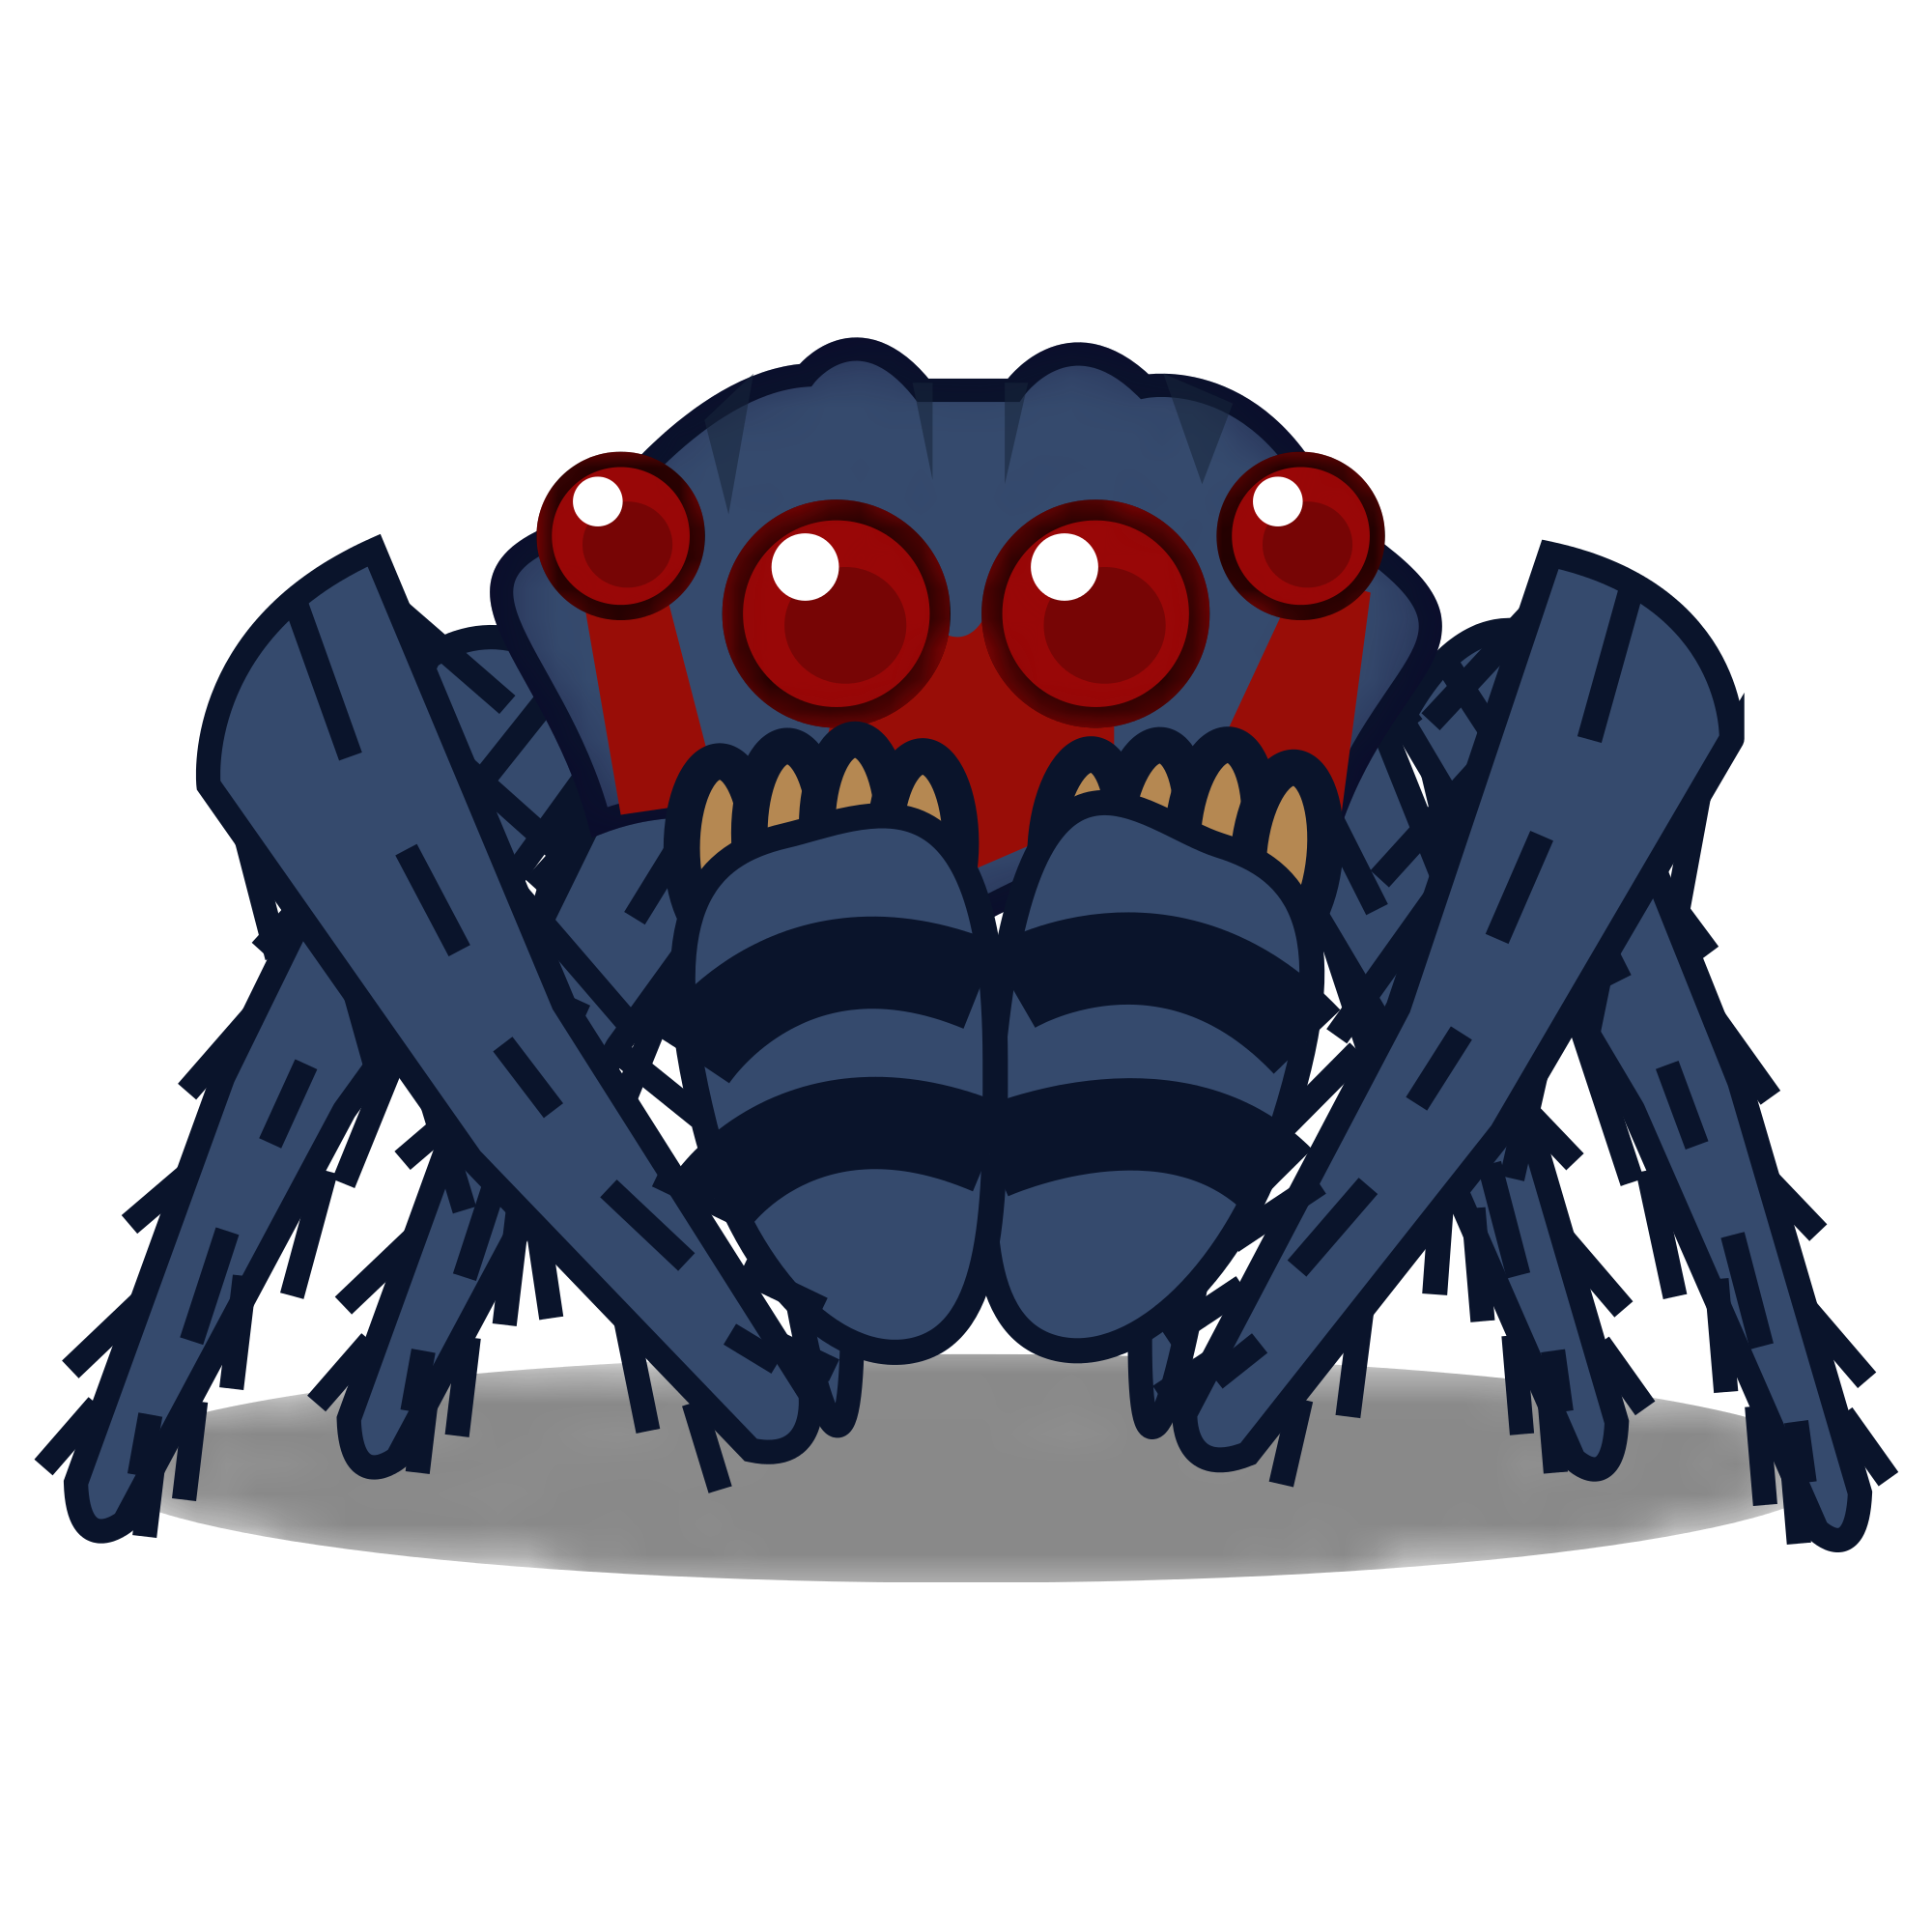 Spider clipart jumping spider. File peo red svg